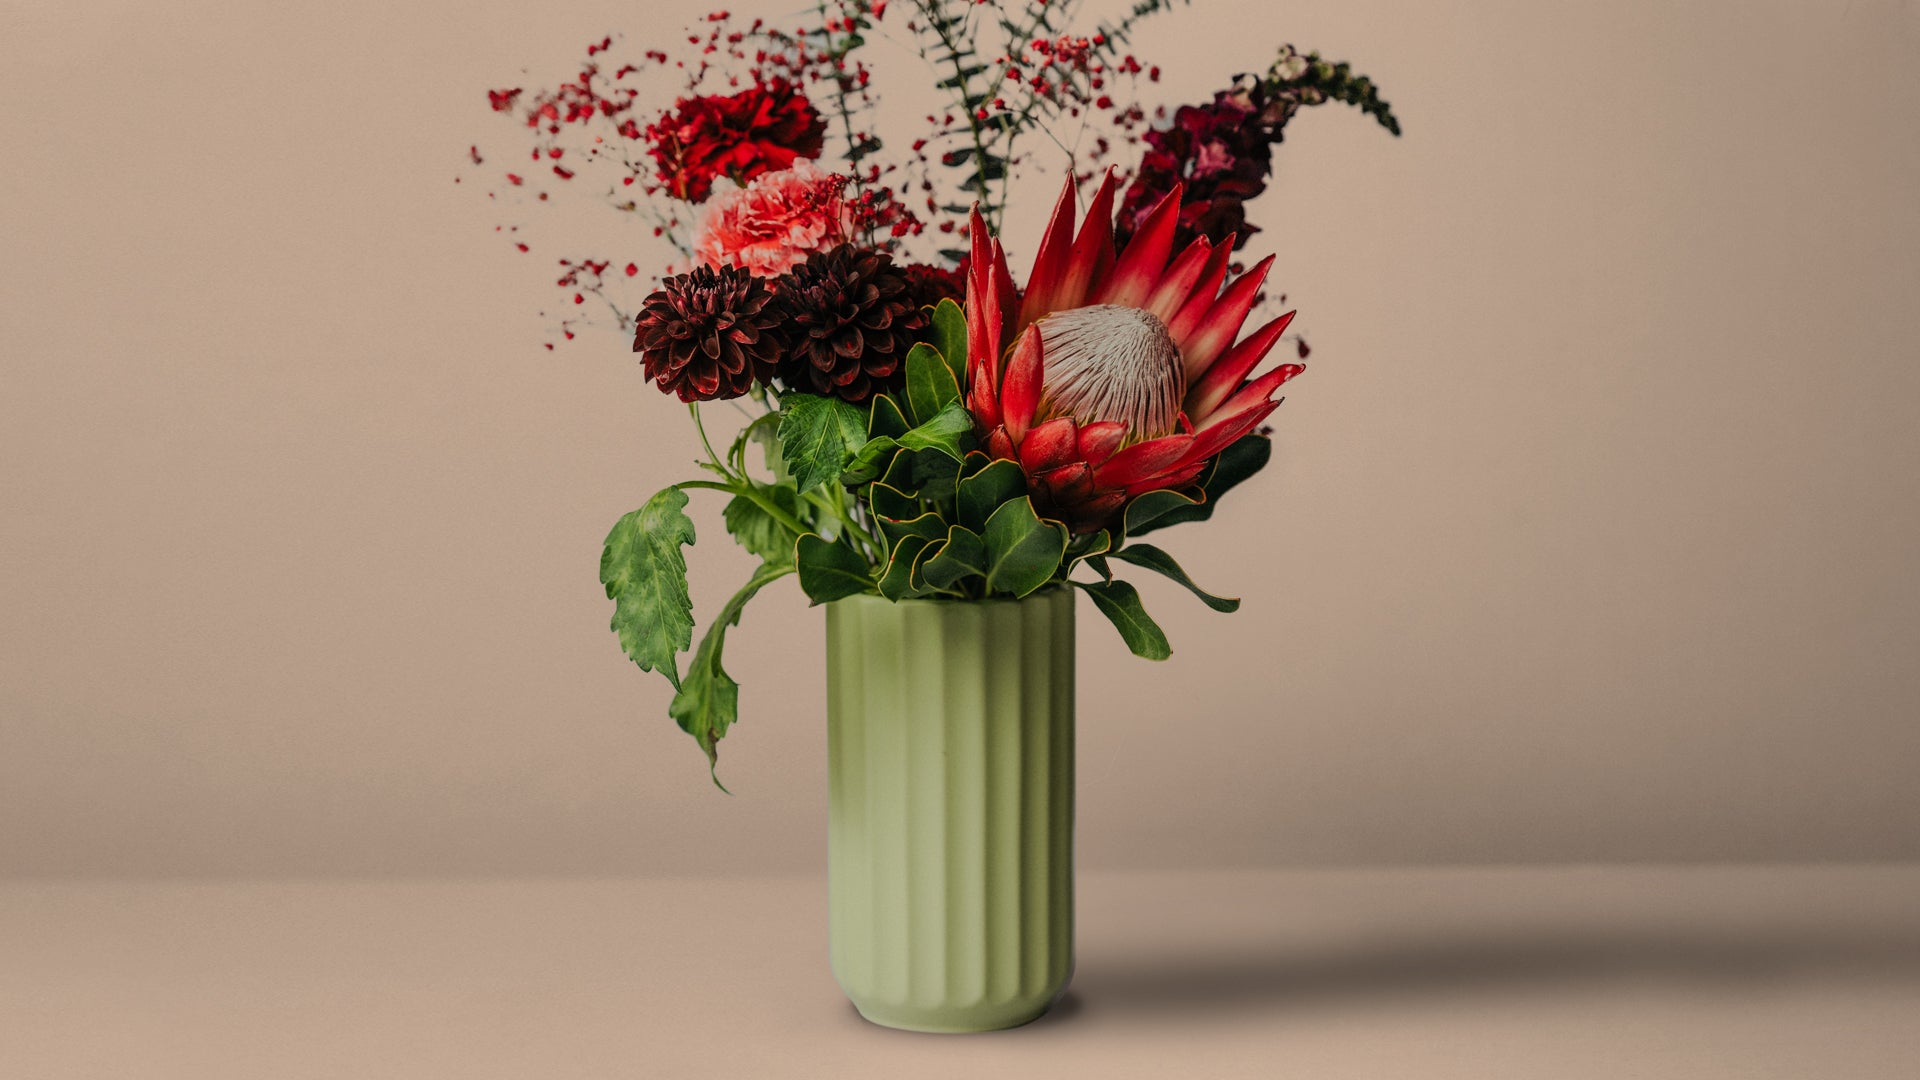 FLOX Botanical. Send Flowers in a Box. Flower Delivery Melbourne.